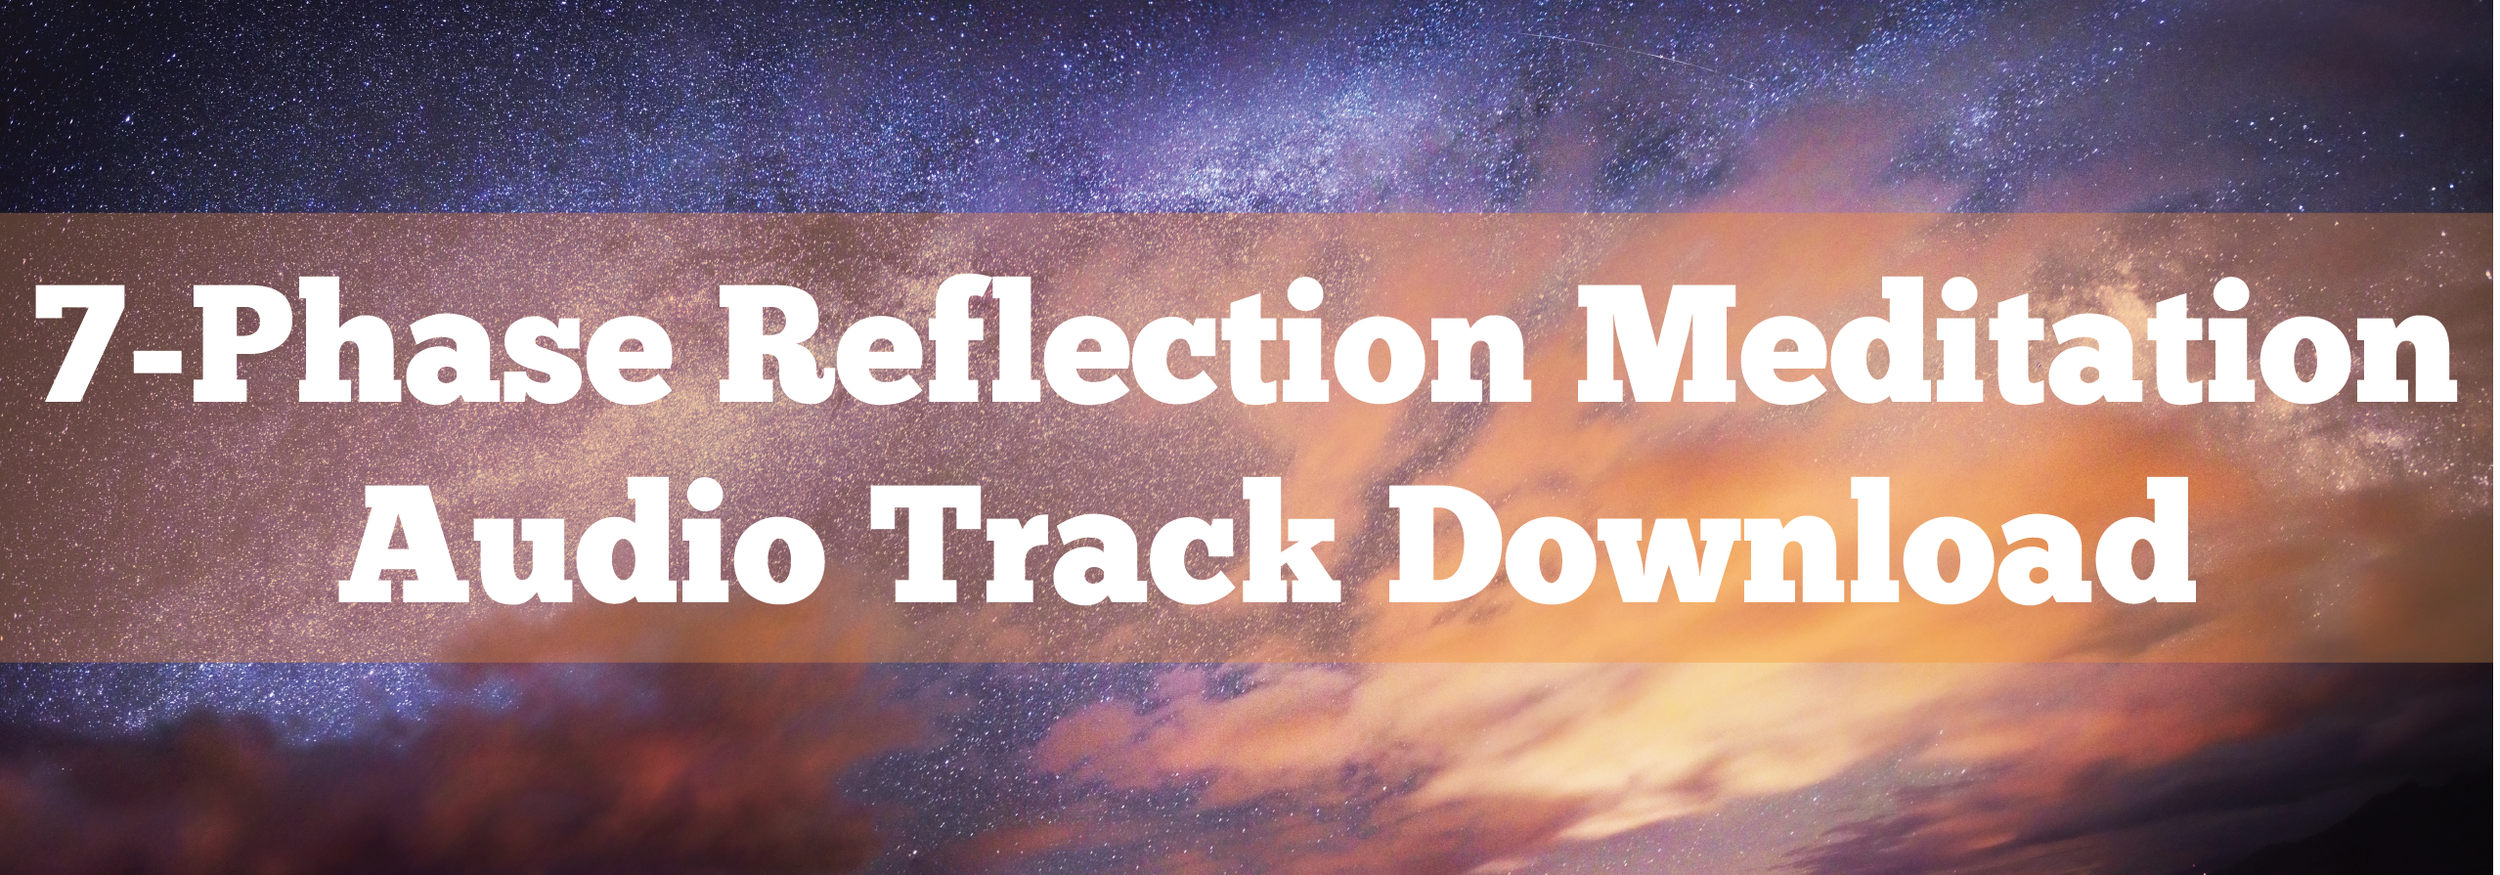 Click the link above to download an audio recording of the 7-Phase Reflection Meditation